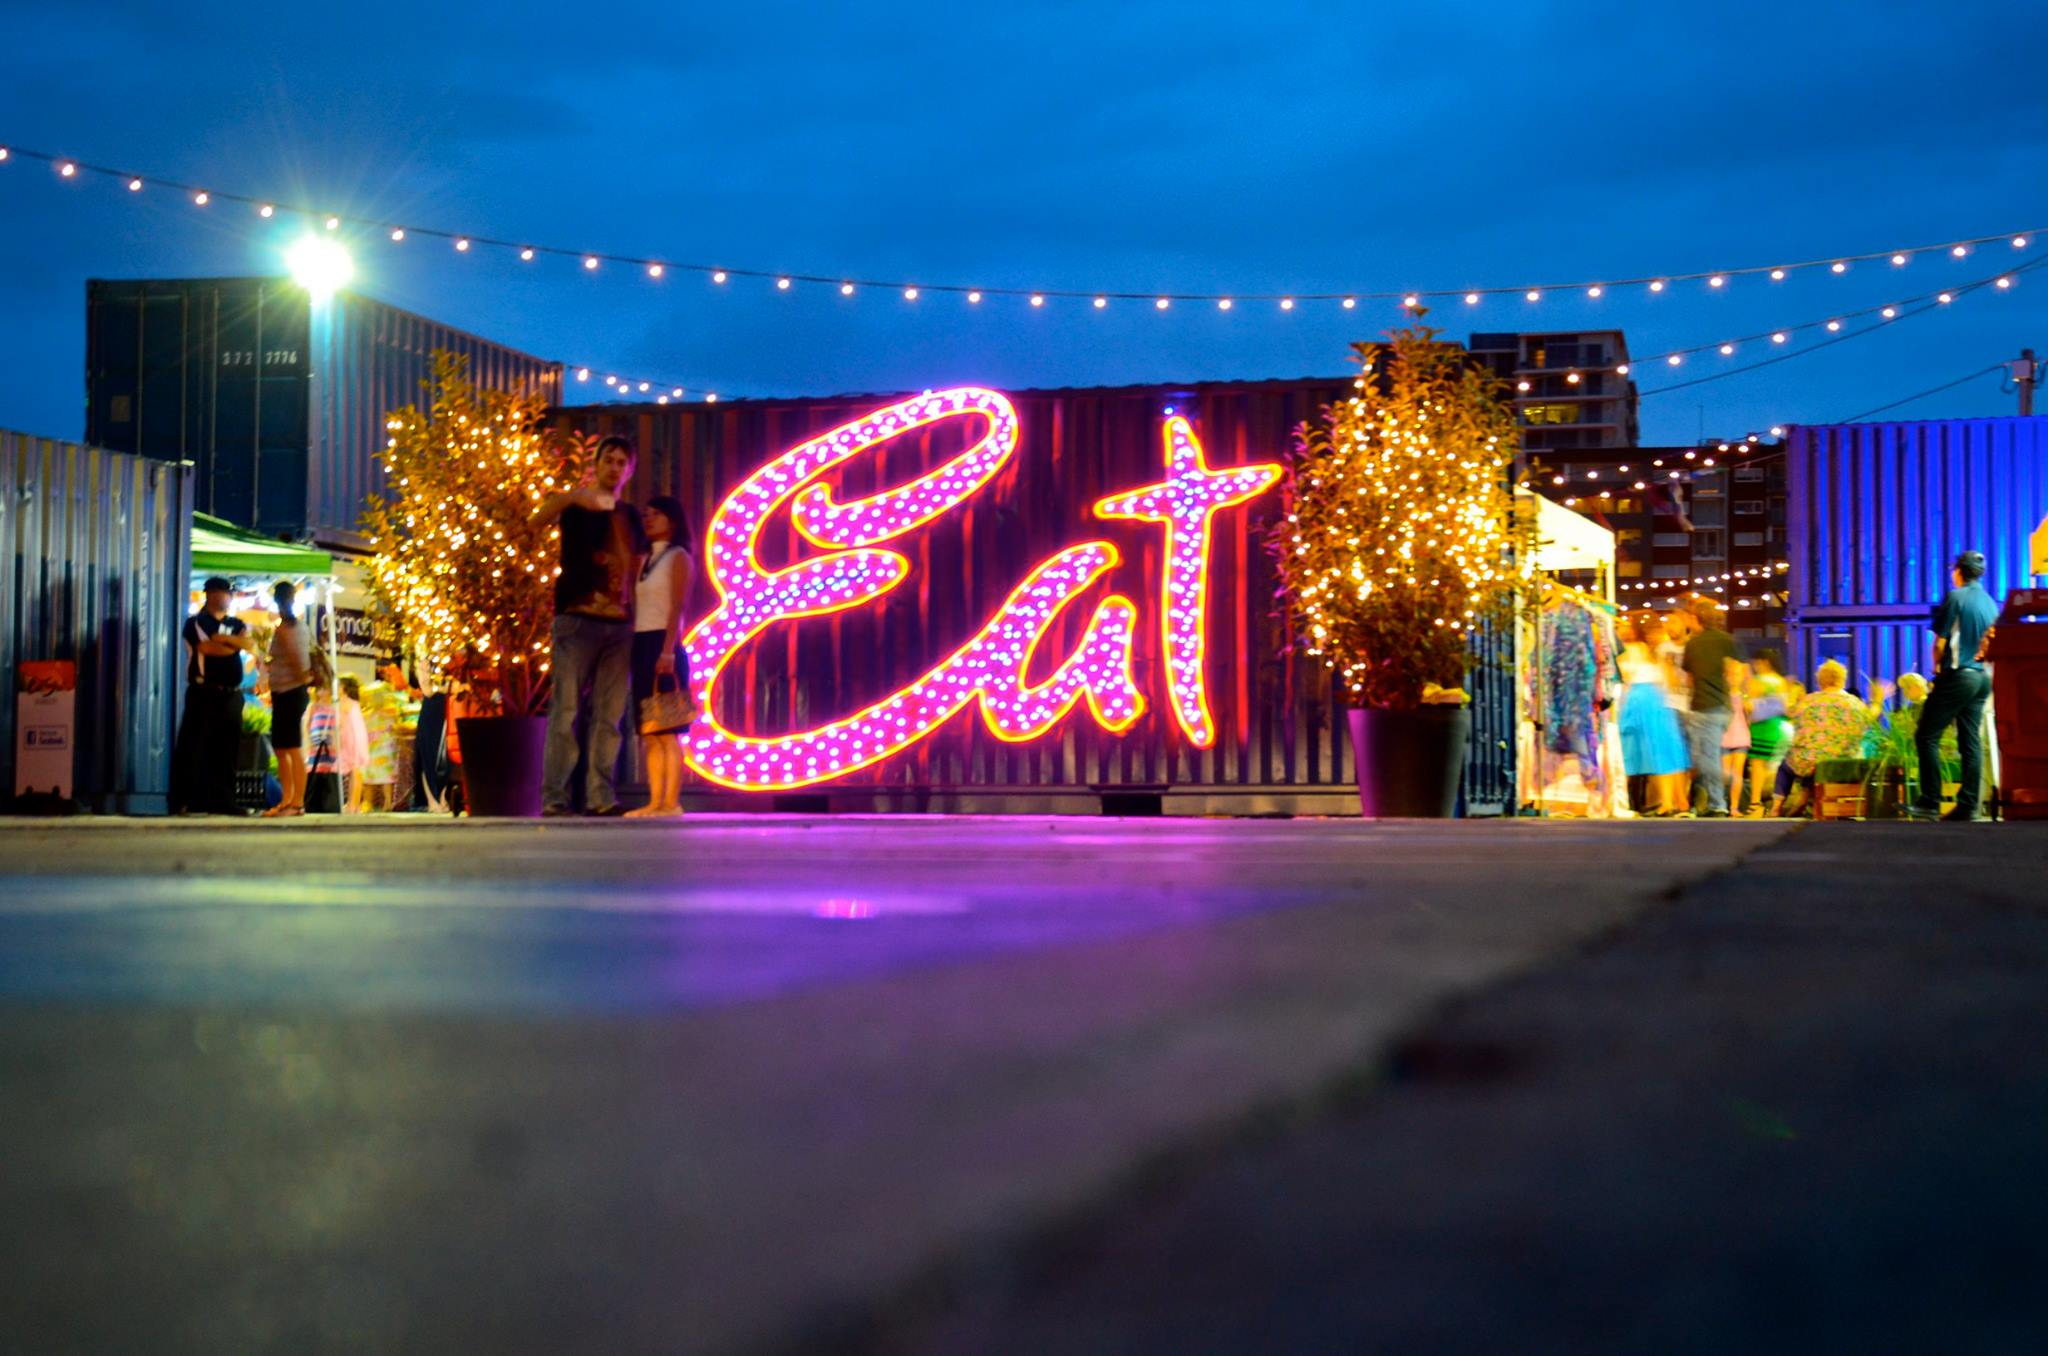 Fun things to do in Brisbane - check out Eat Street Market